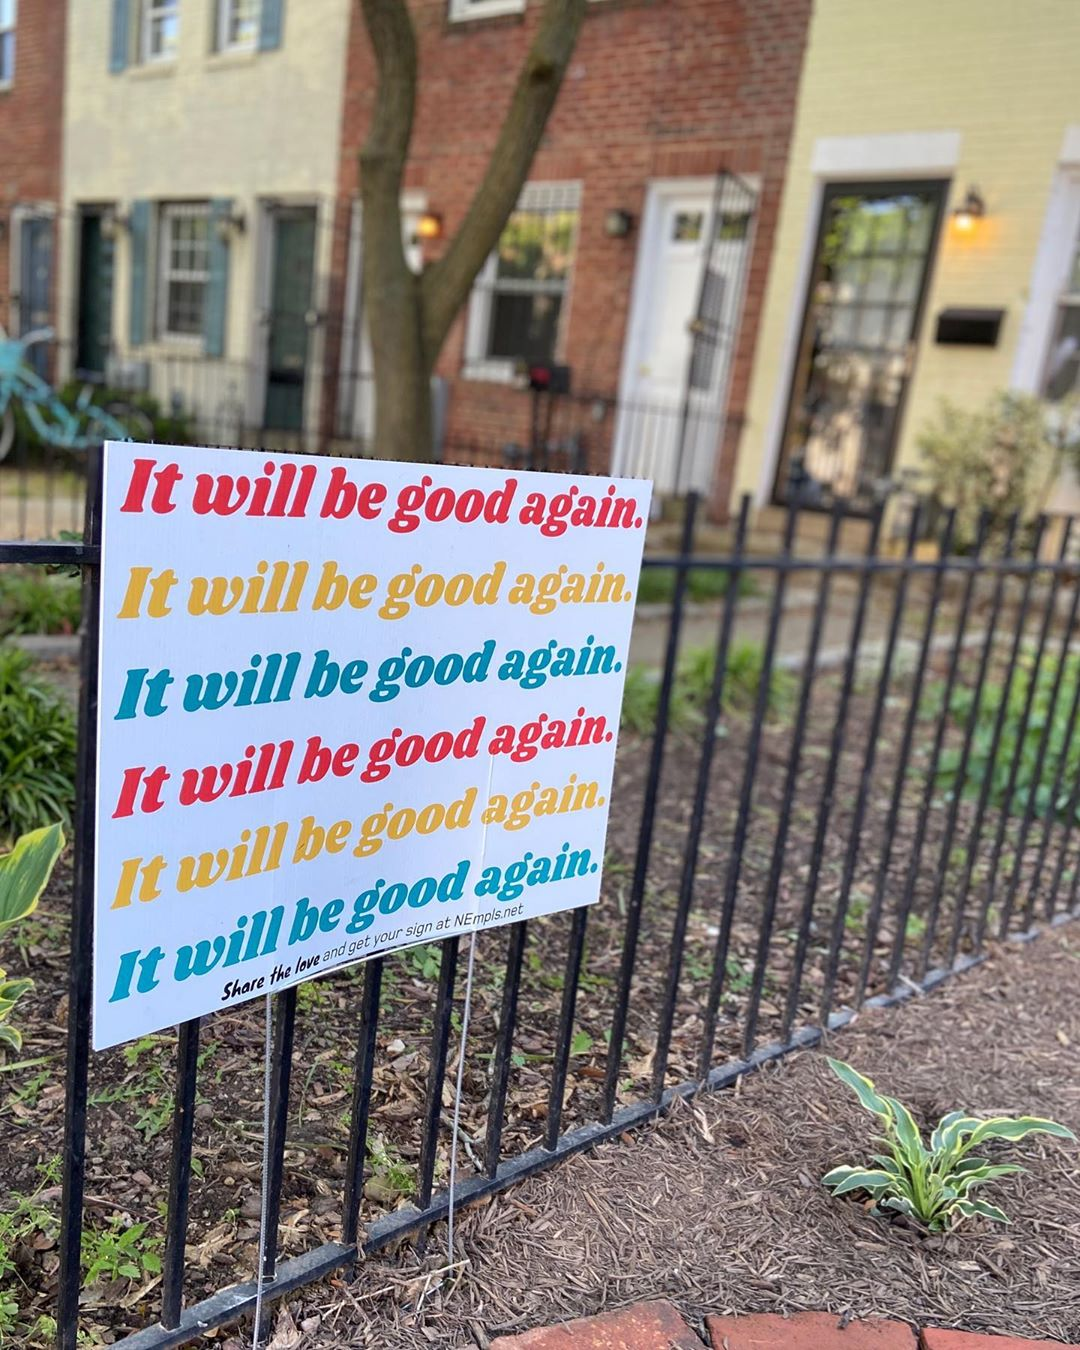 A yard sign at 17 St and C St SE. Photo courtesy of DC Public Library.